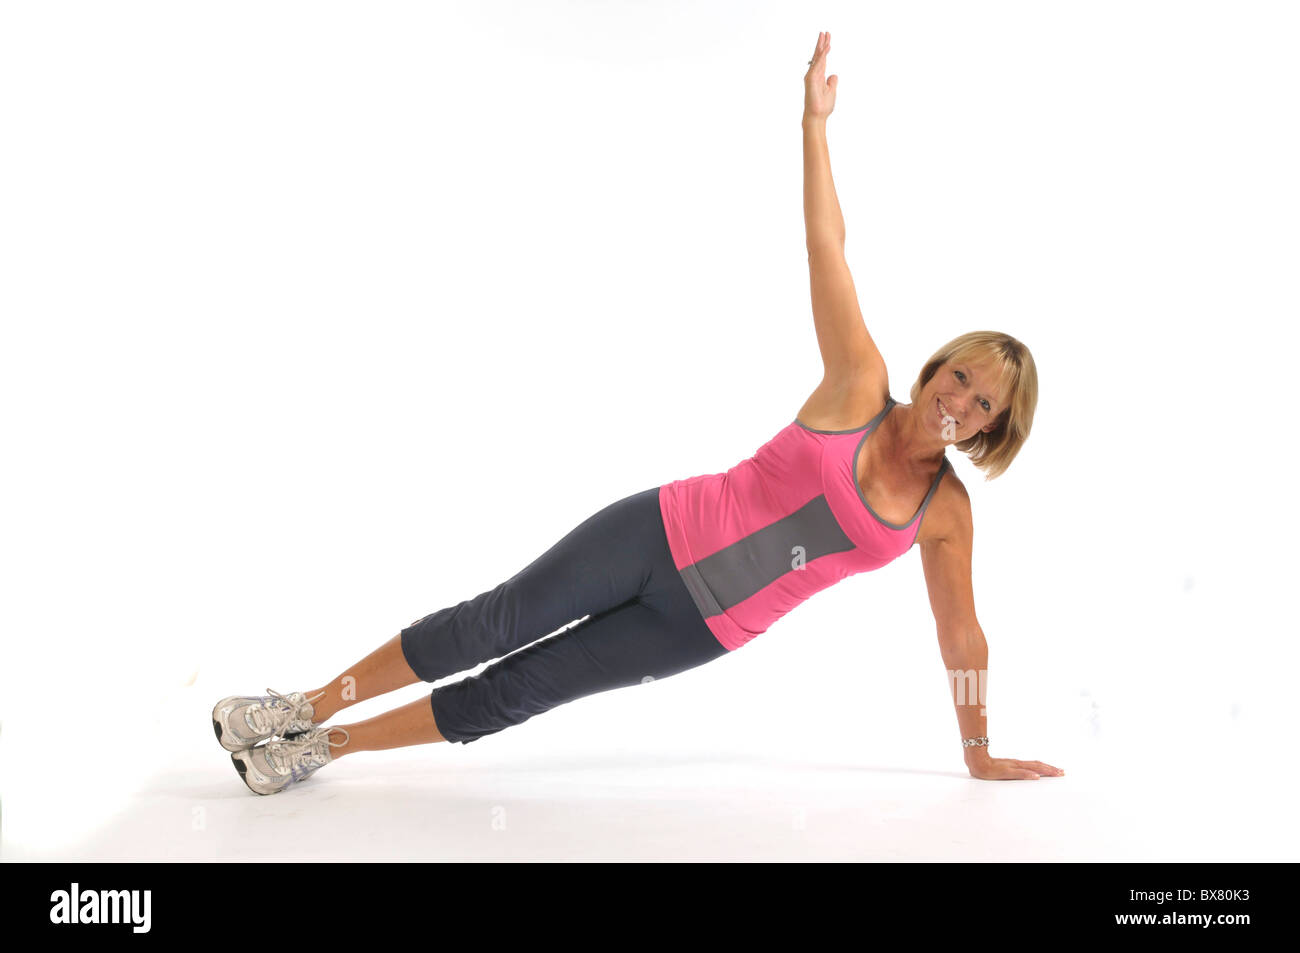 50 yr old female demonstrating side plank in studio - Stock Image